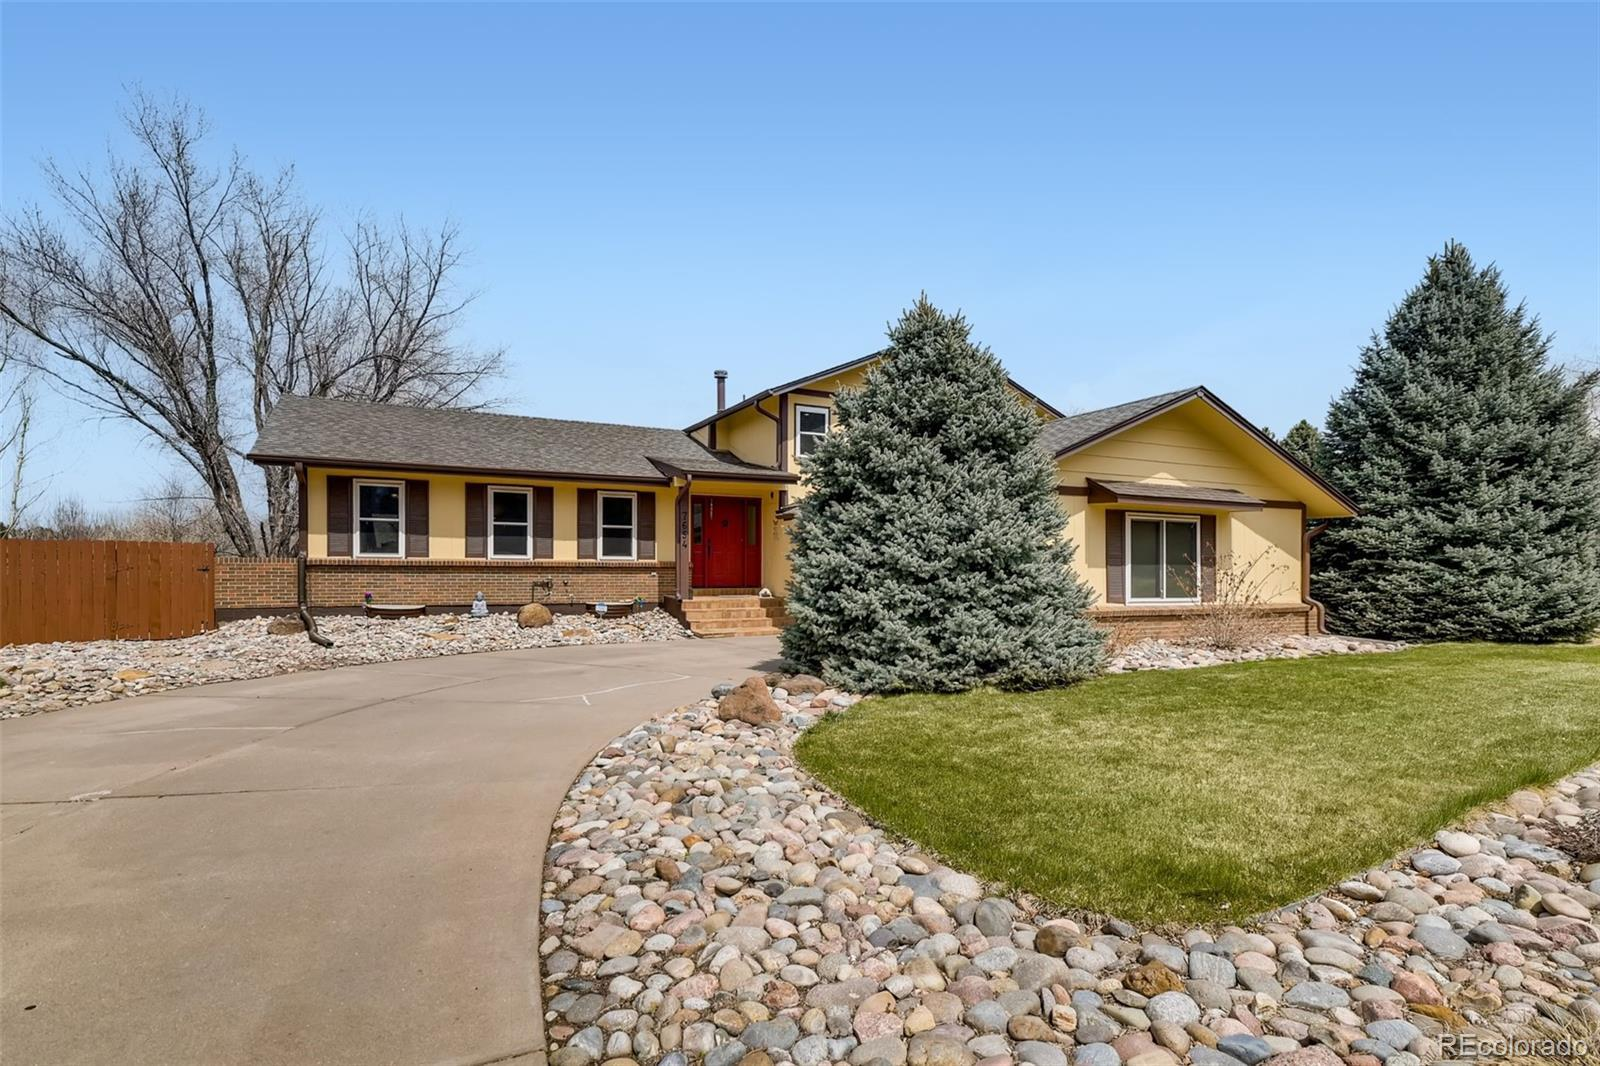 7654 S Oneida Way, Centennial, CO 80112 - MLS#: 8651890